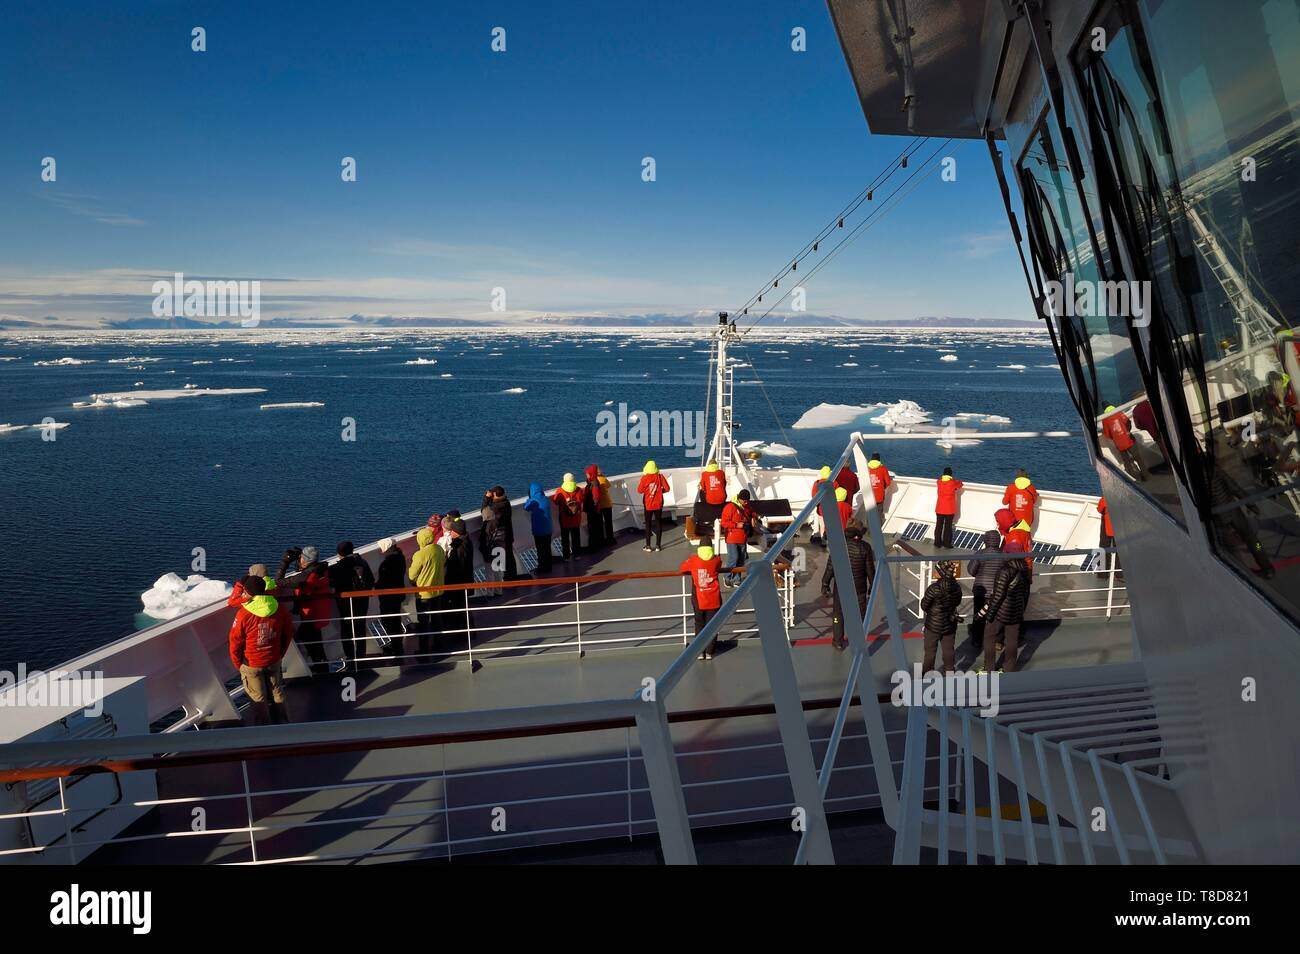 Greenland, North West coast, Smith sound north of Baffin Bay, MS Fram cruse ship from Hurtigruten next to the Arctic sea ice evolving towards the Canadian coast of Ellesmere Island - Stock Image